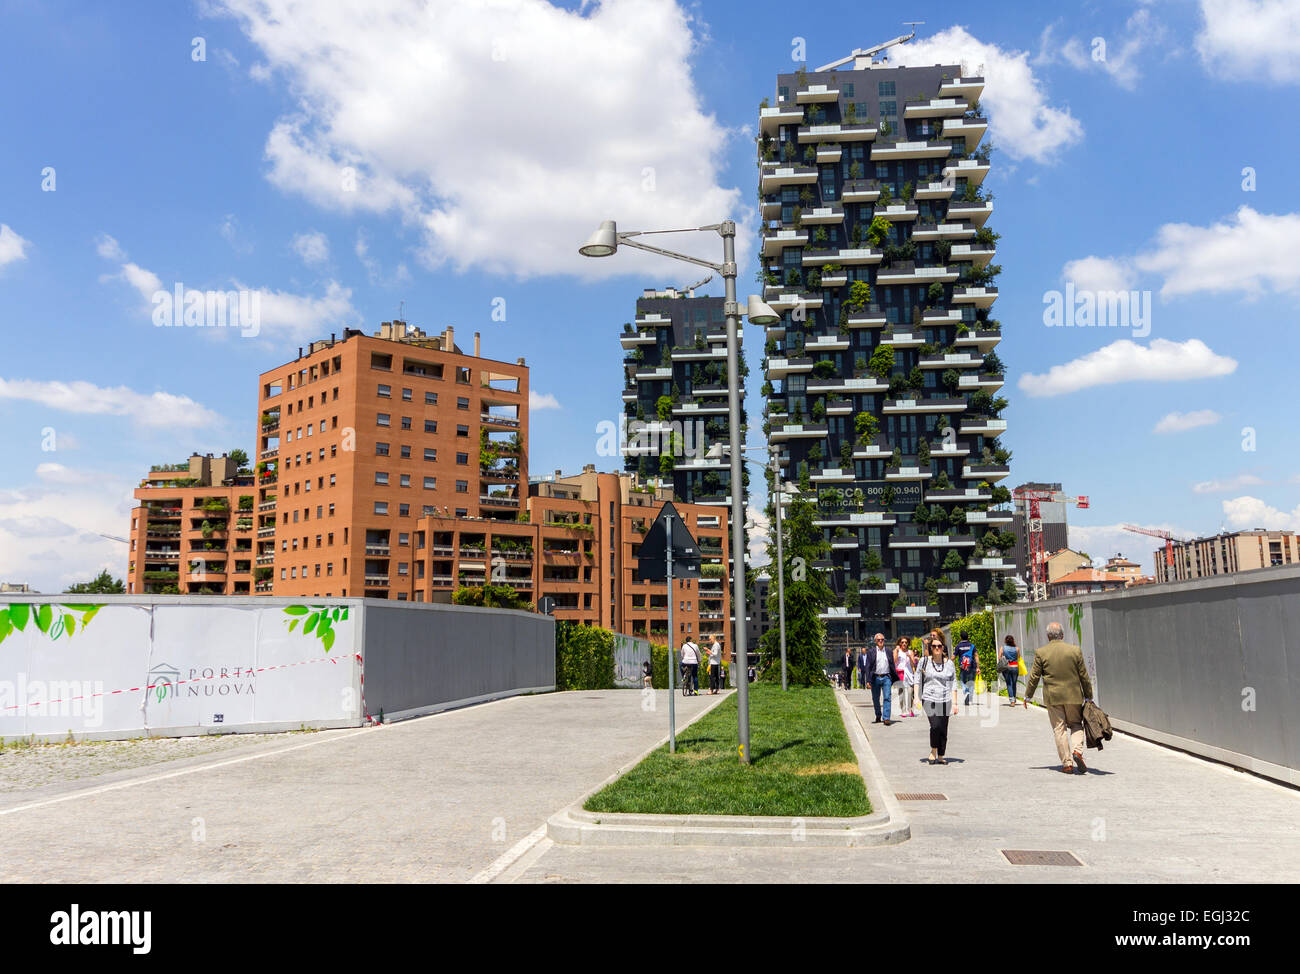 Bosco verticale wikipedia